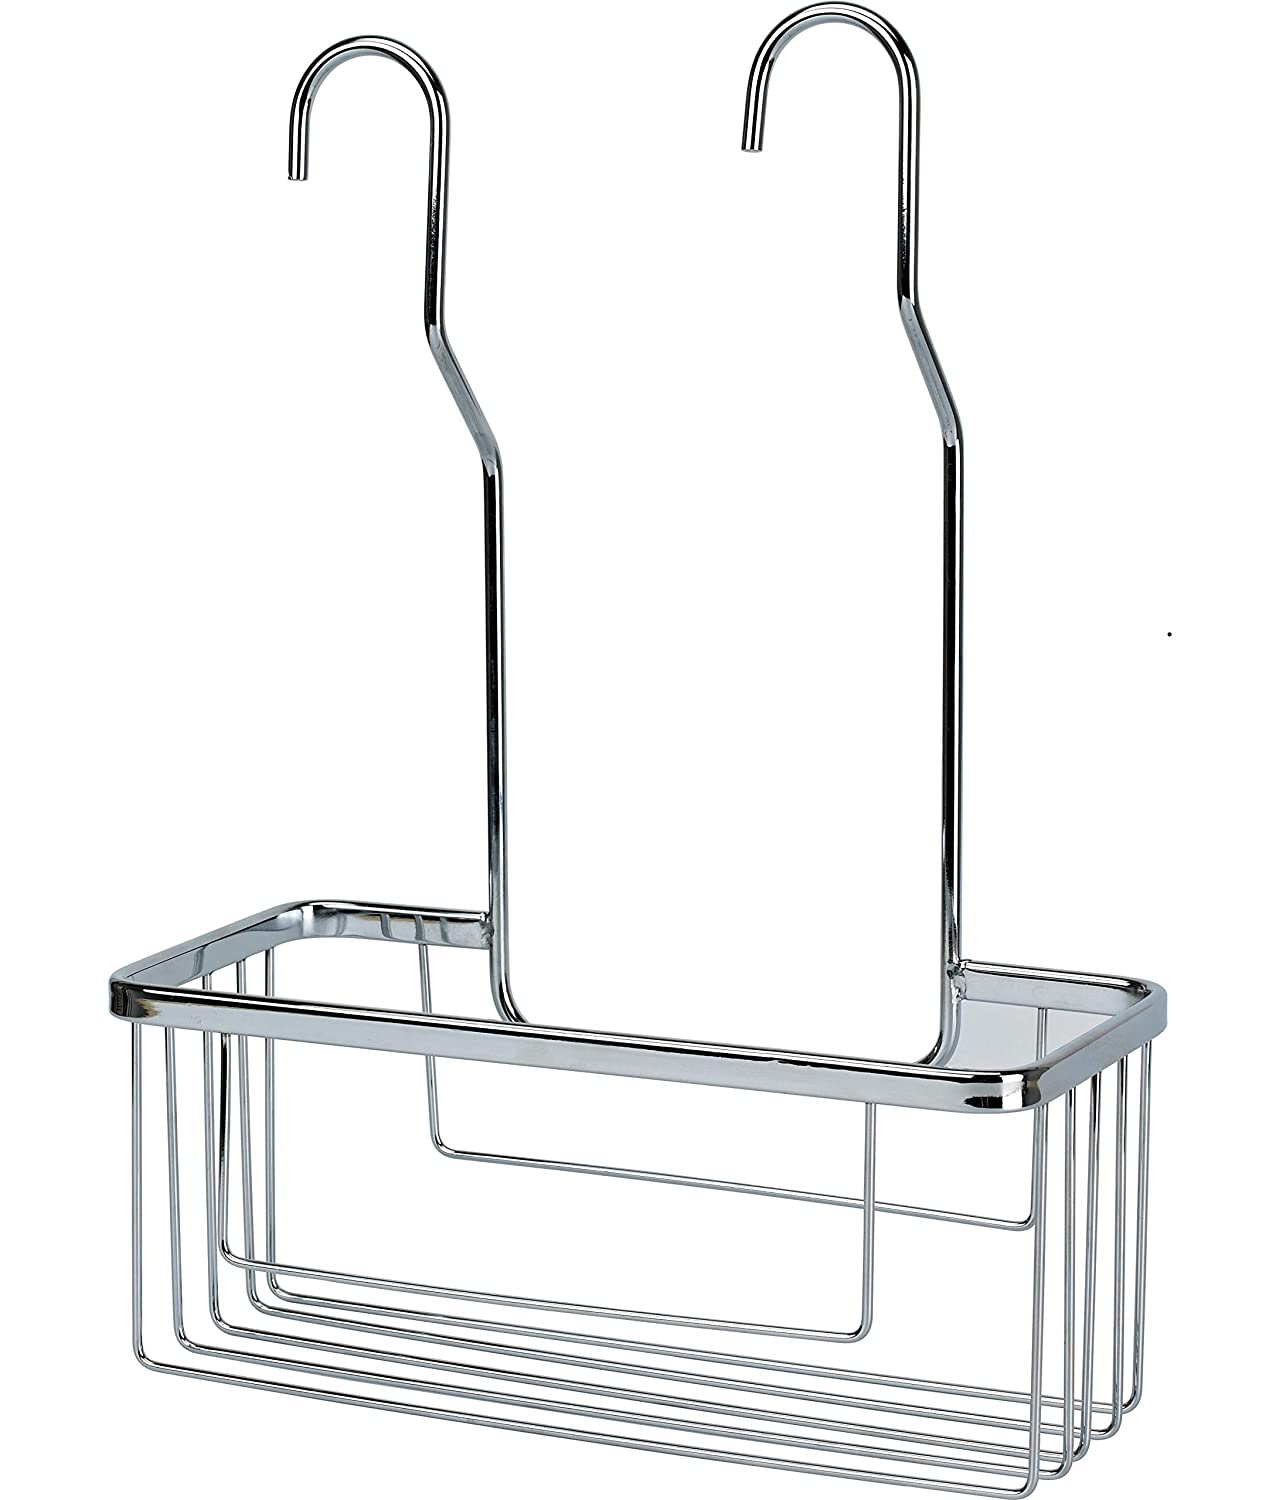 Keenware KSC-003 Shower Caddy, Chrome